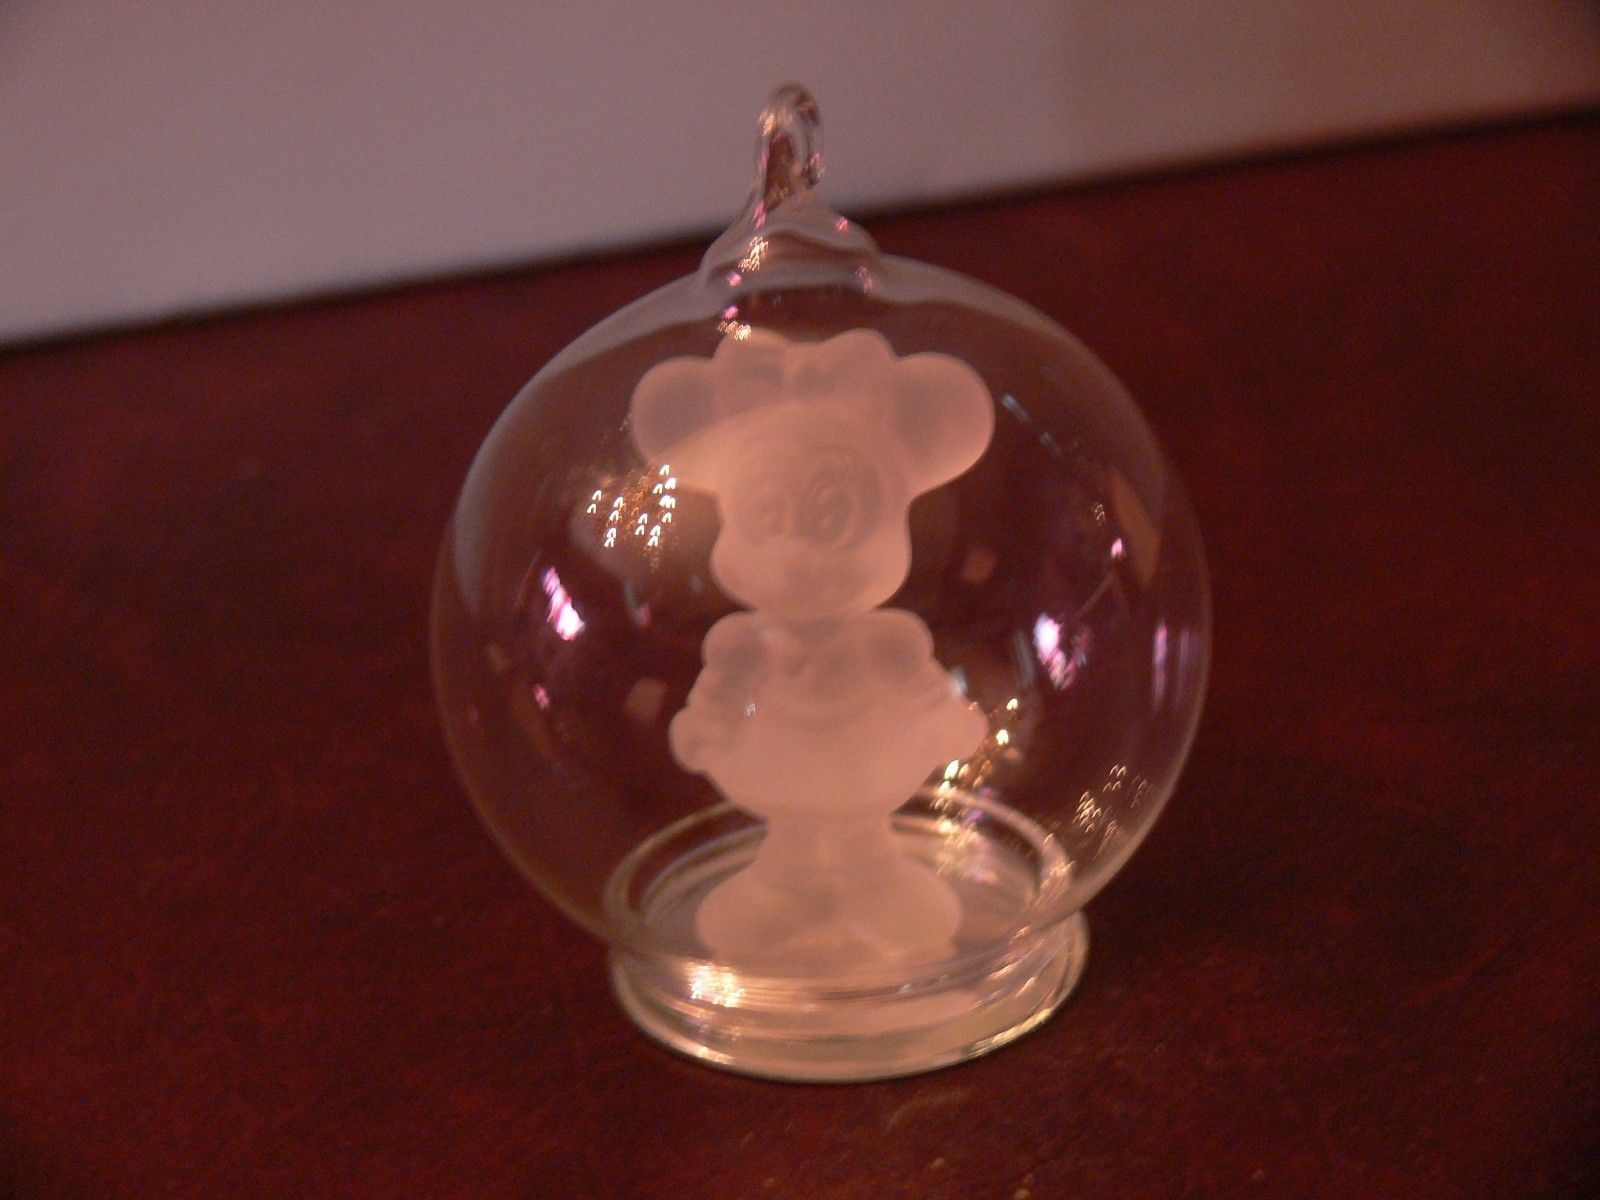 e1f9a76f26d504 Disney Minnie Mouse Crystal Glass Figurine and 50 similar items. S l1600